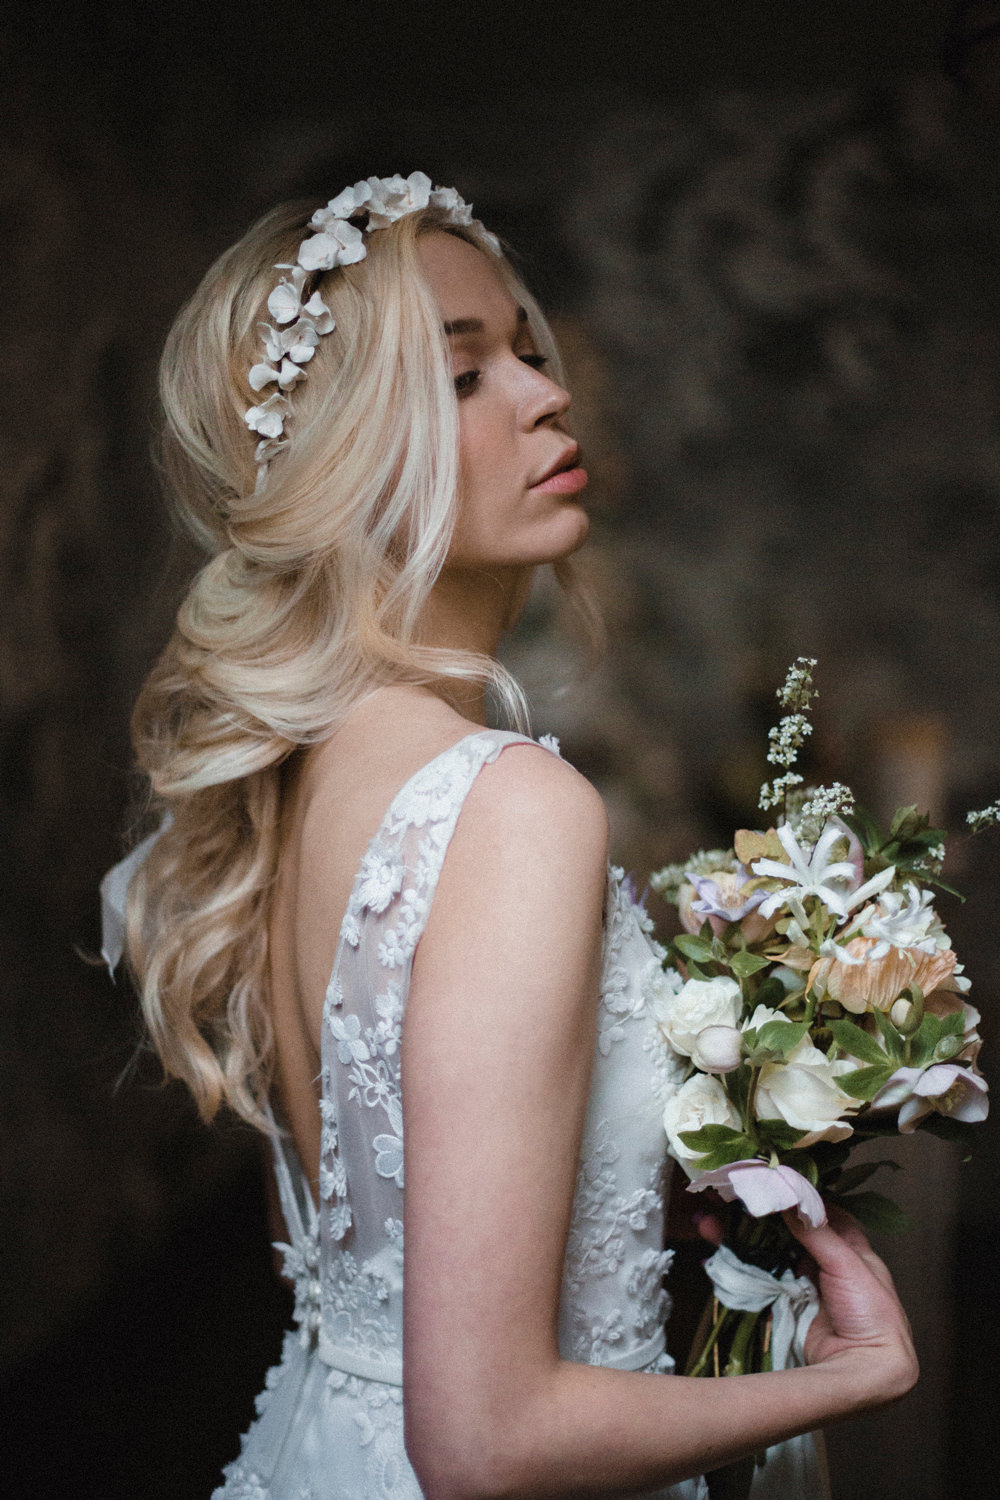 Bride Bridal Hair Style Up Do Curls Ribbon Waves Crown Whimsical Elegant Wedding Ideas Mandorla London